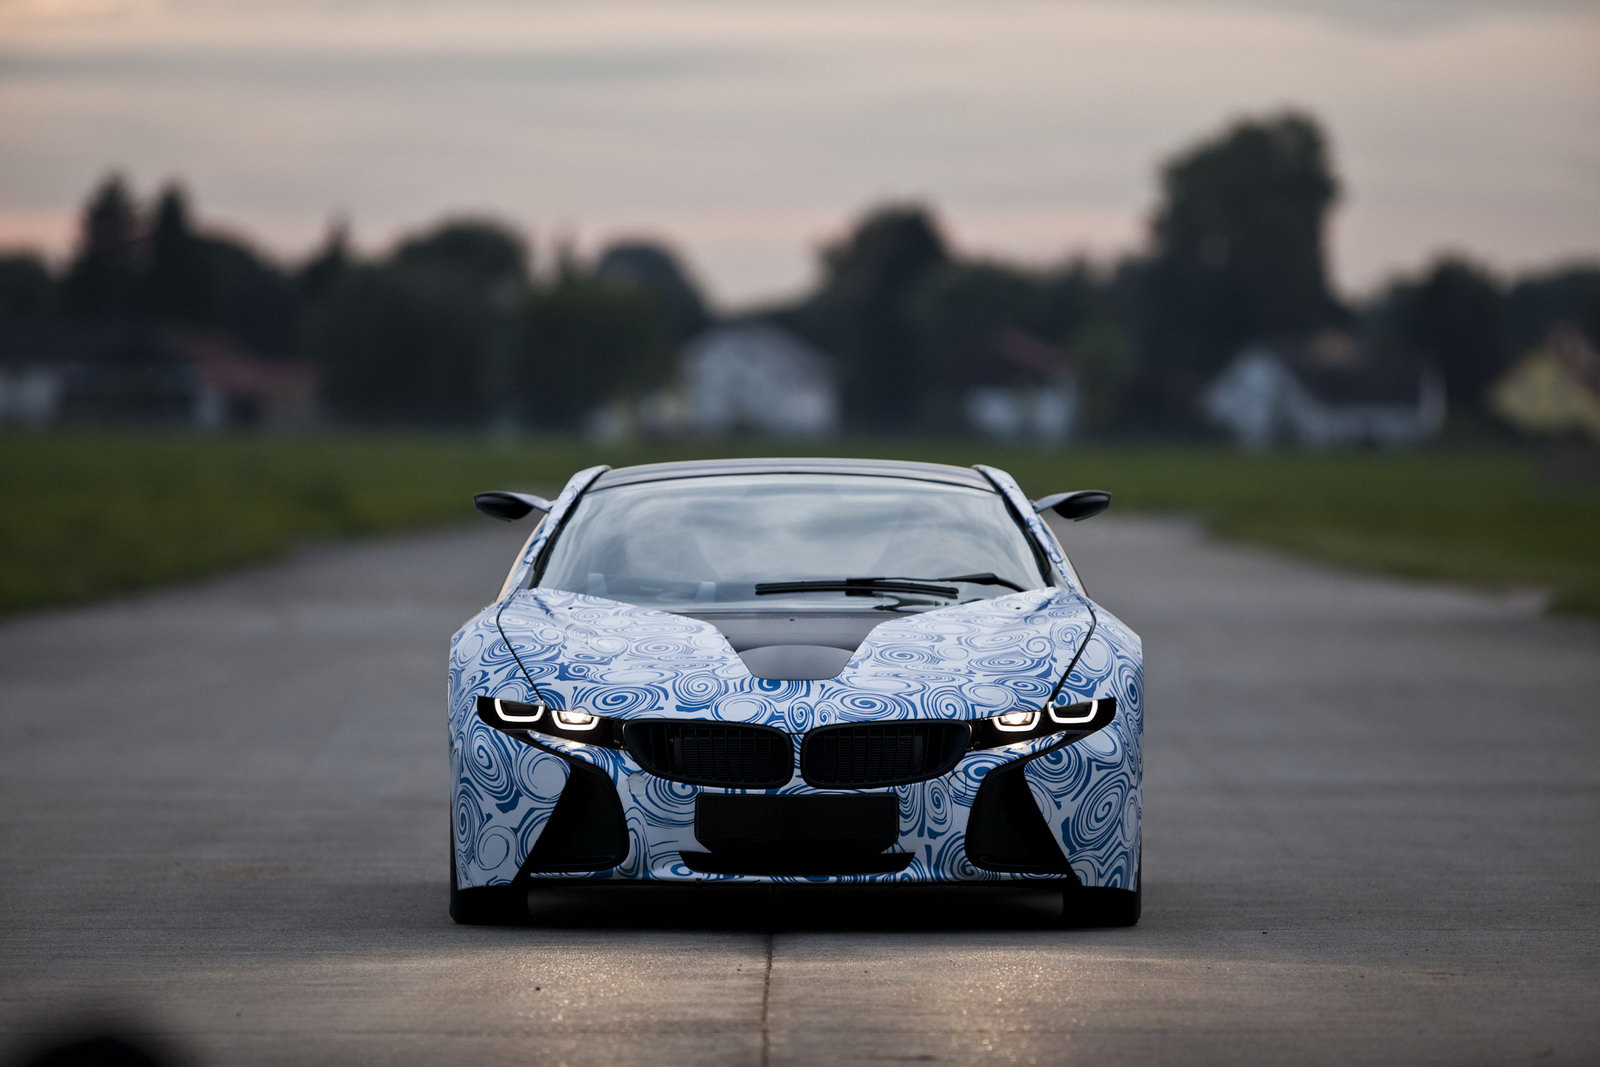 If you're into cars the i8